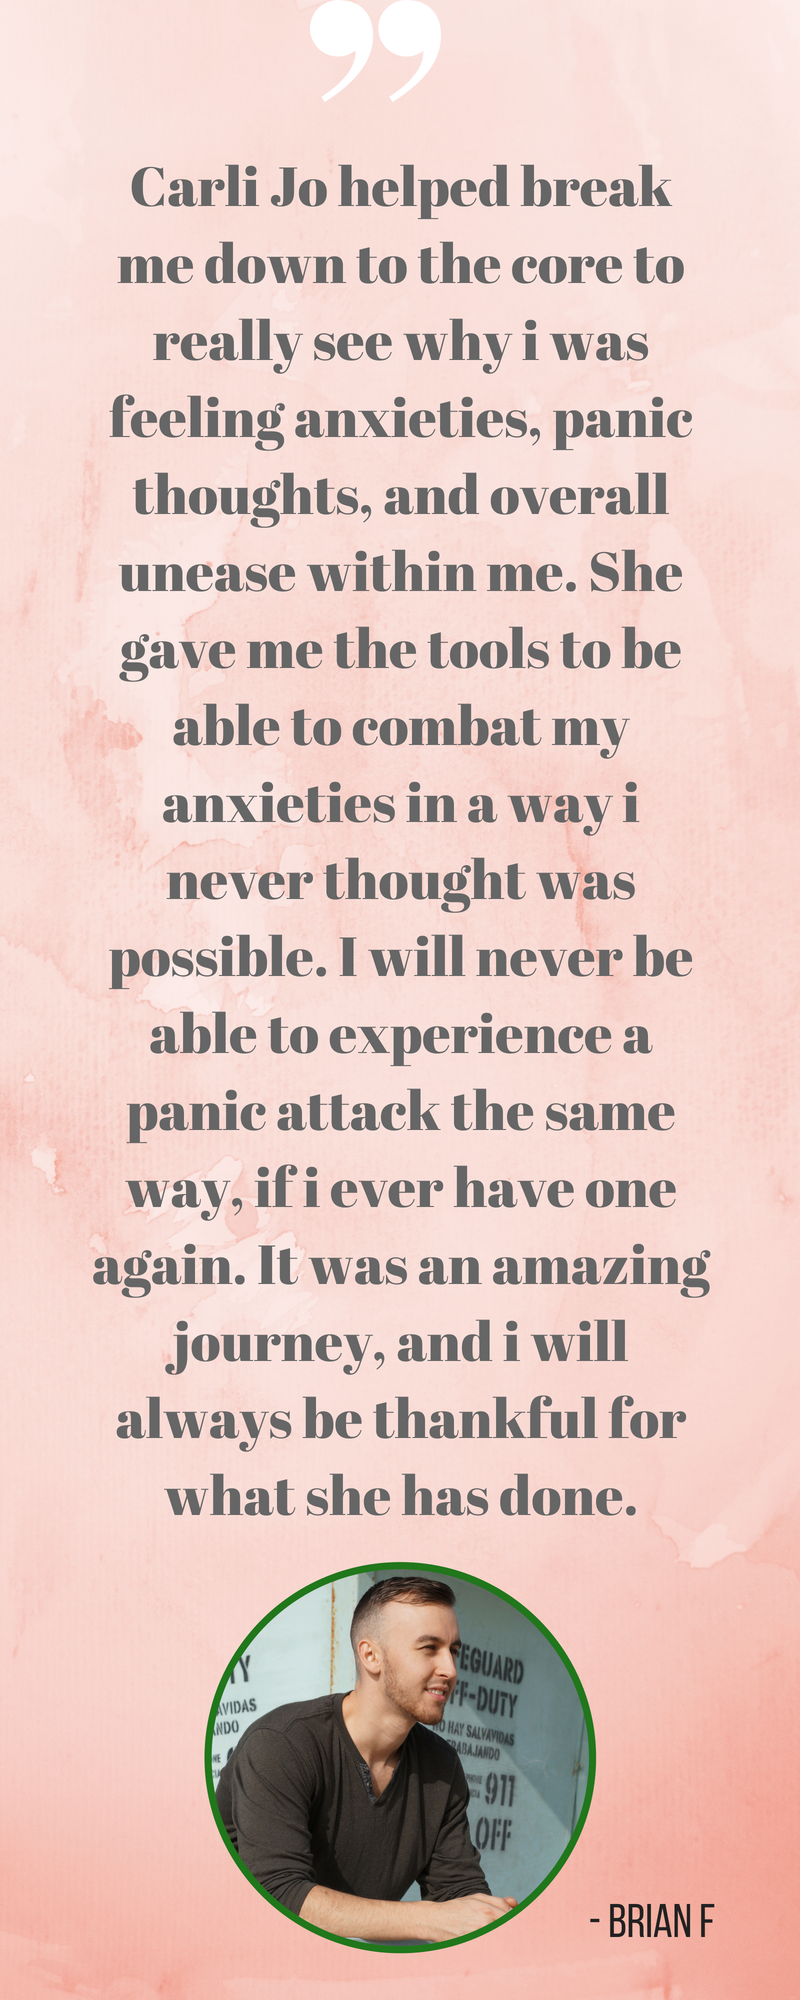 Carli Jo helped break me down to the core to really see why i was feeling anxieties, panic thoughts, and overall unease within me. She gave me the tools to be able to combat my anxieties in a way i never thought was .png